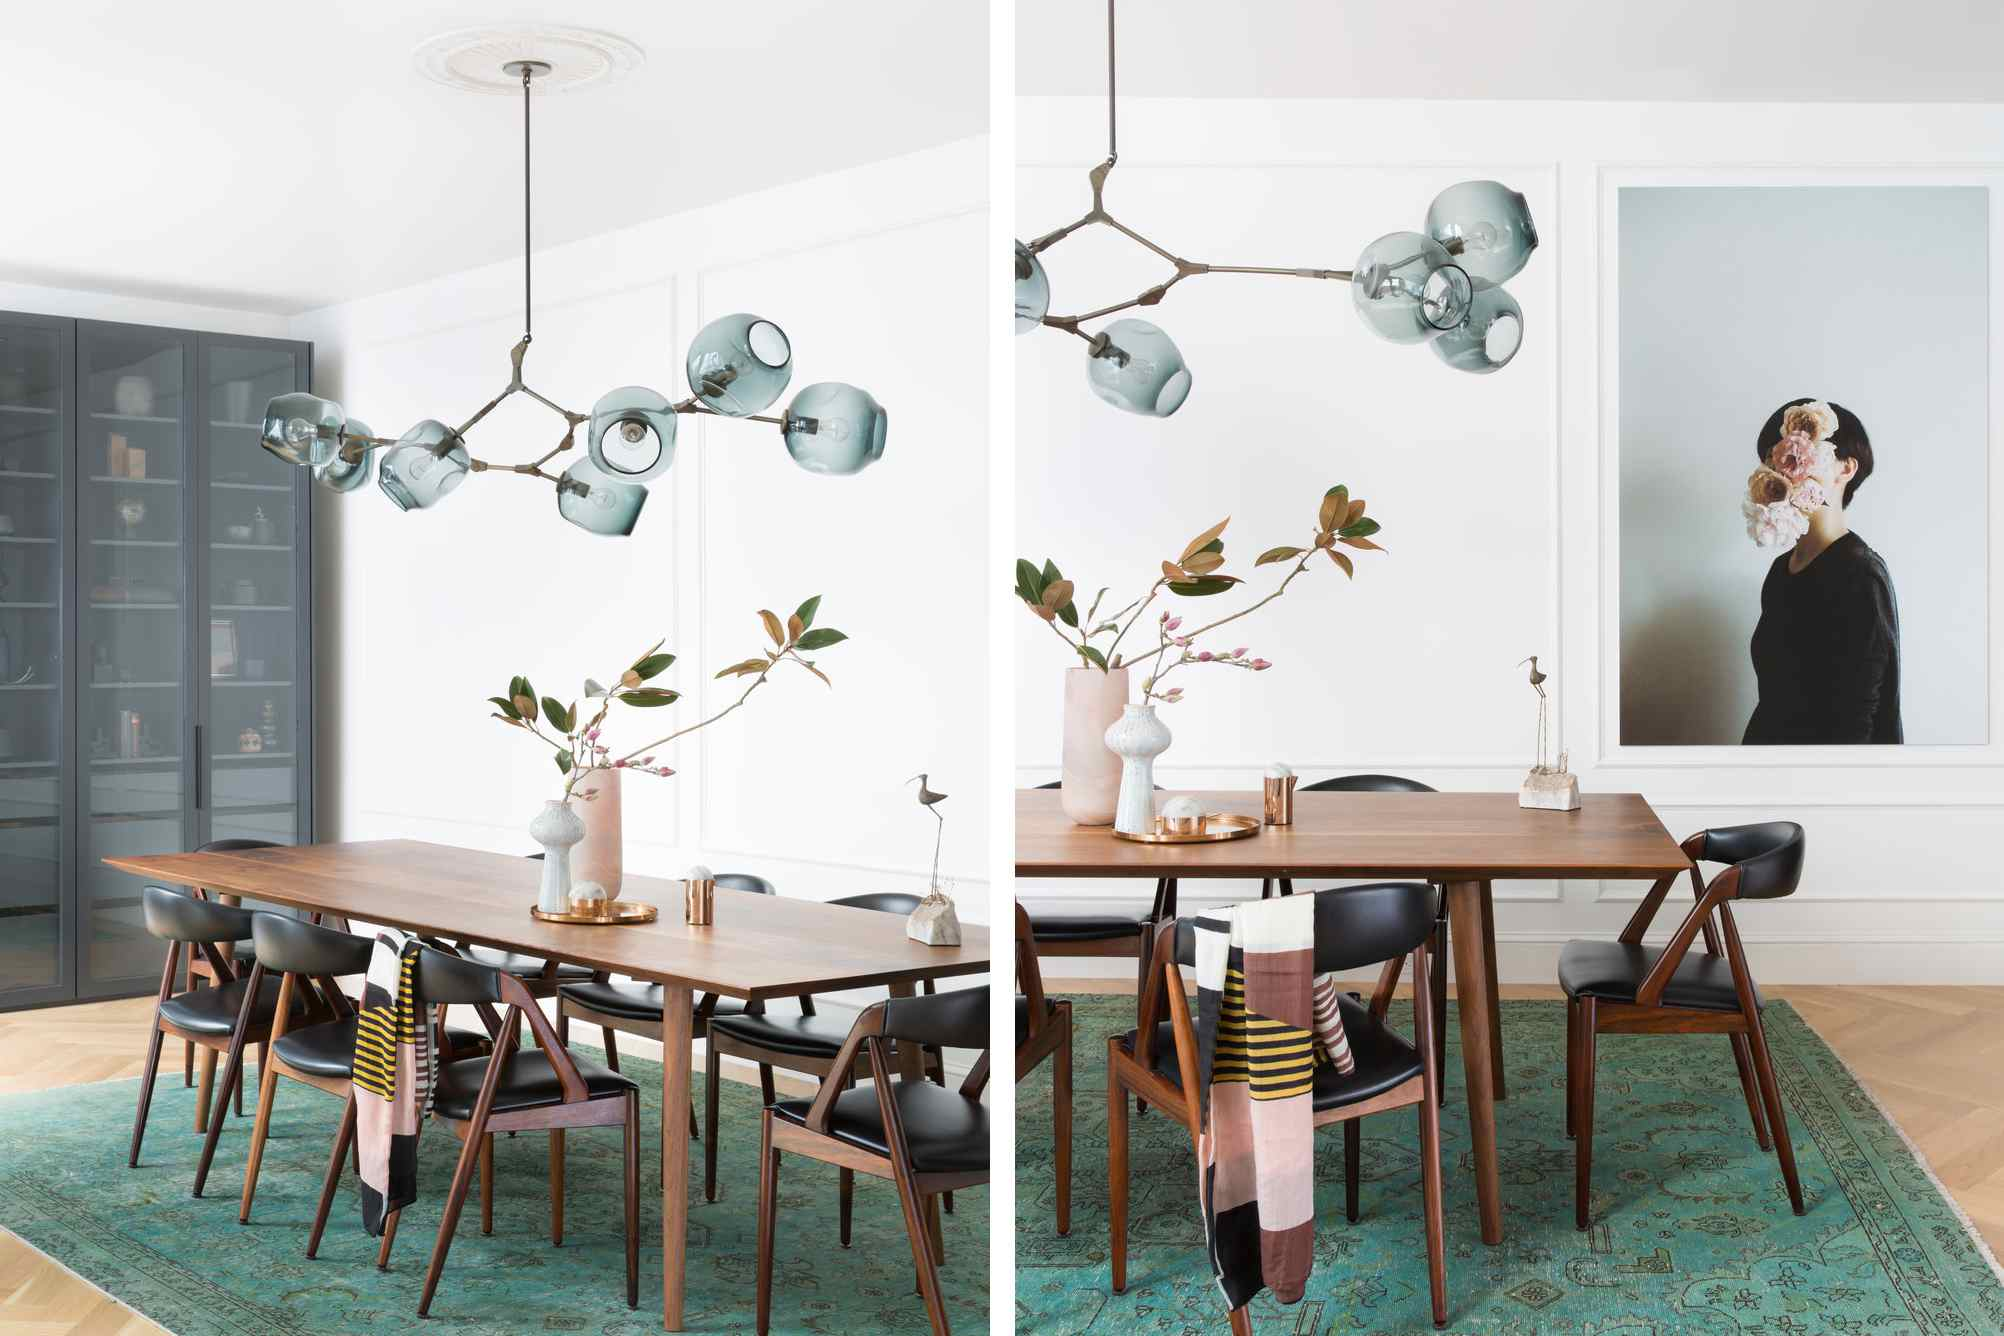 a fixtures greater dining over multiple room ideas lighting the impact for table use